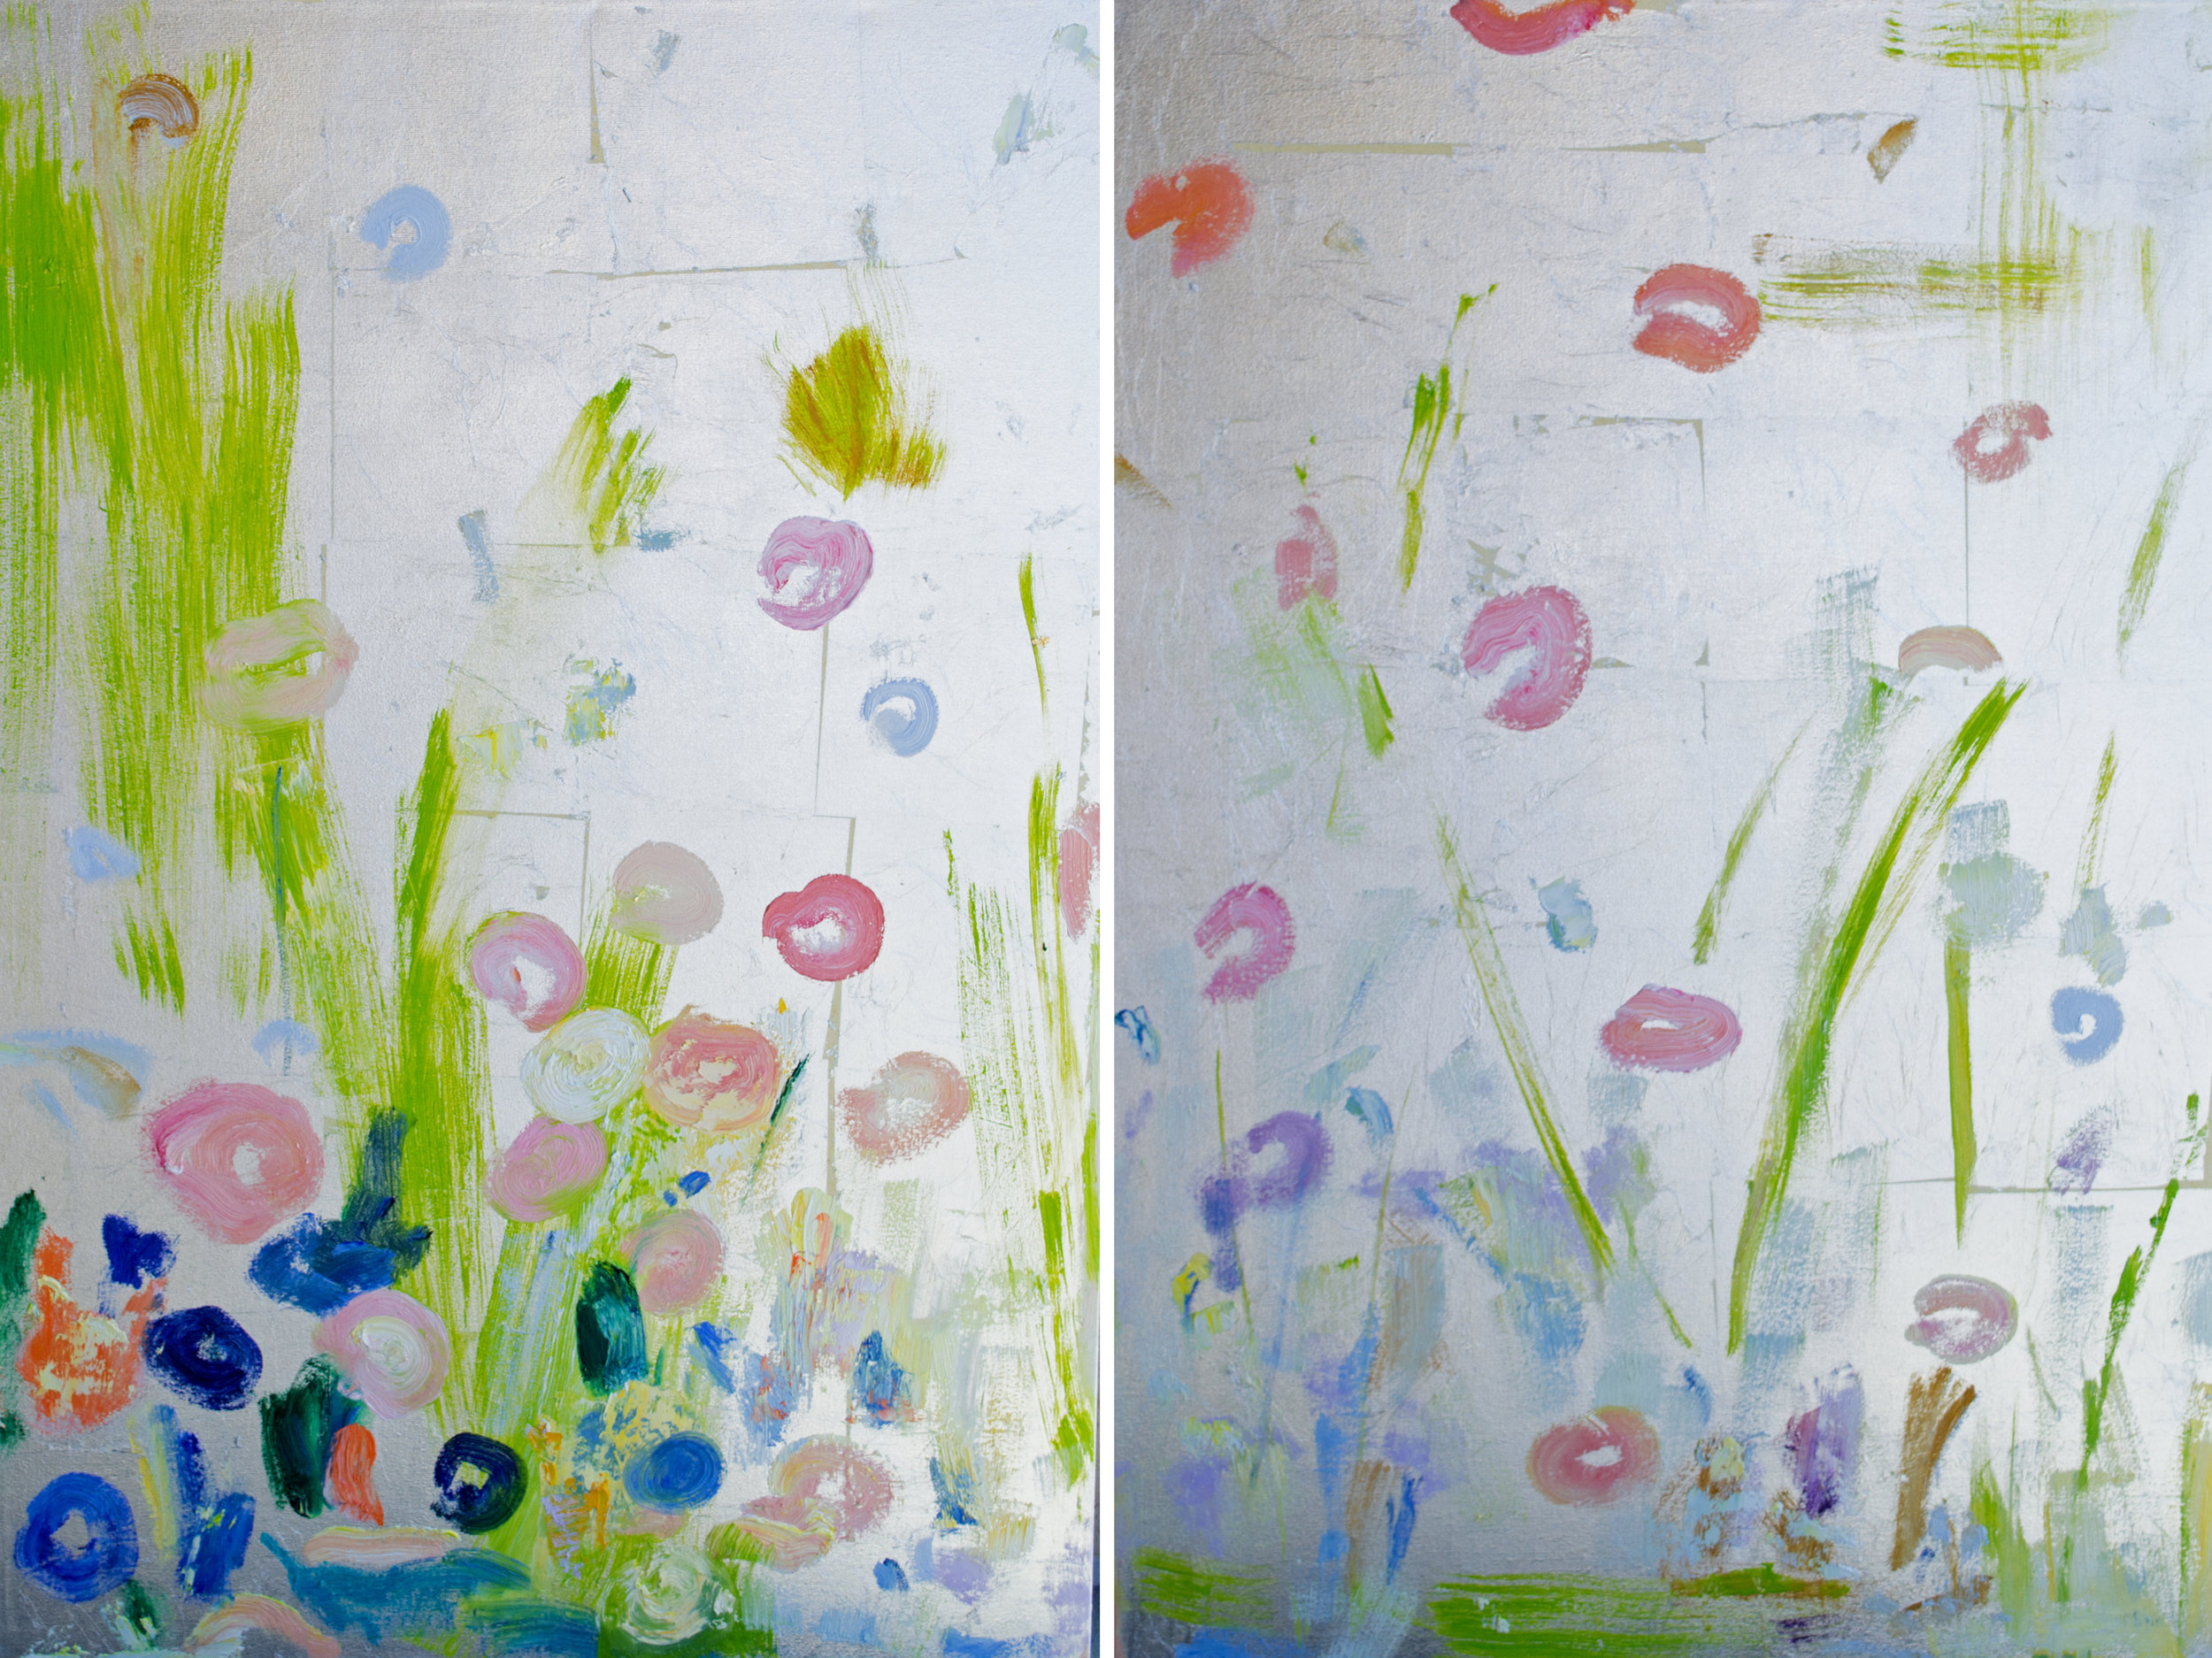 Refresh#36 x 48 in. total, diptych